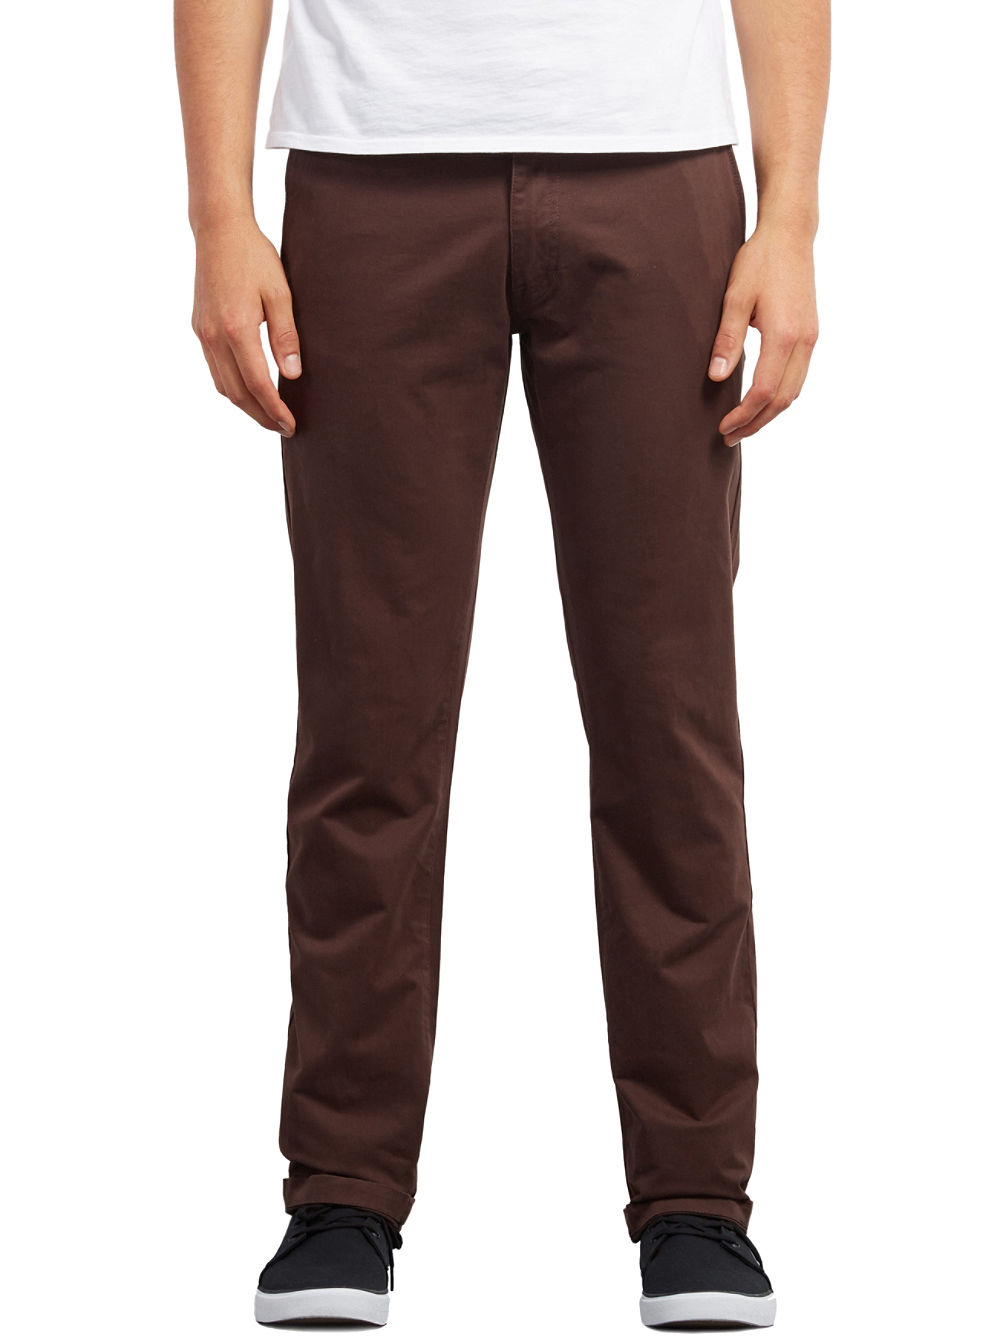 hot-selling genuine usa cheap sale variety styles of 2019 Frickin Slim Chino Pants